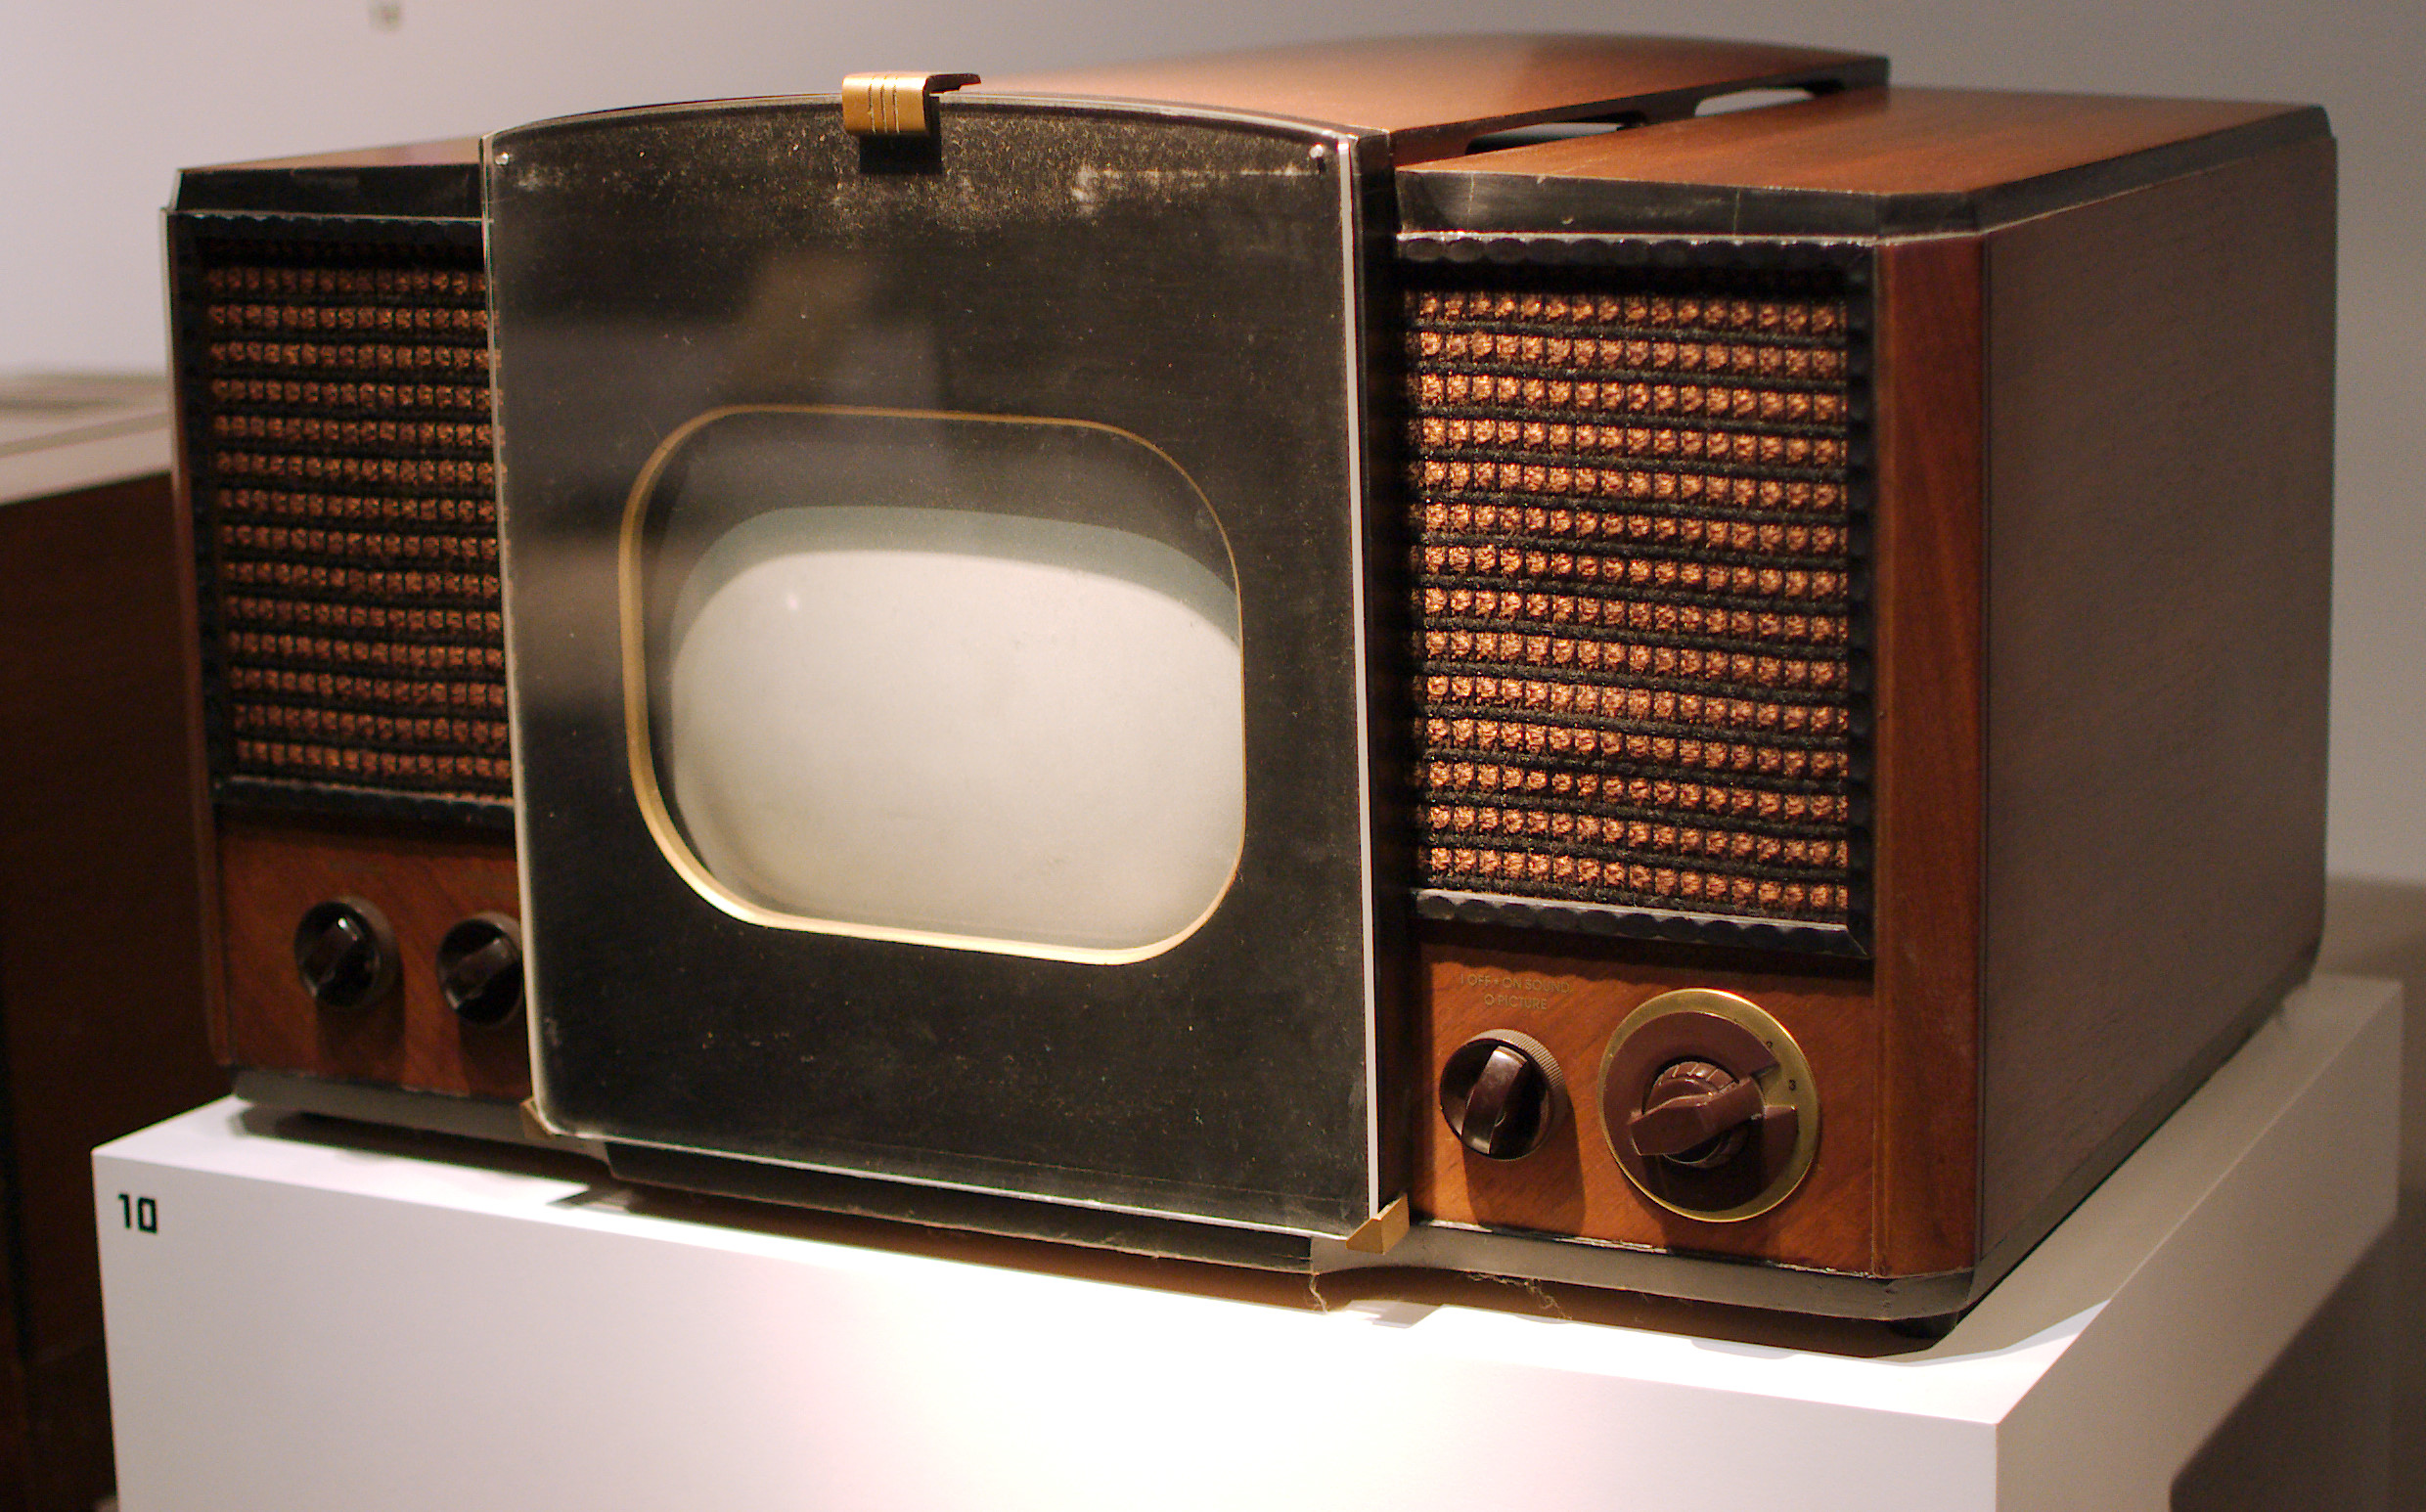 The RCA 630TS, the first mass-produced TV.